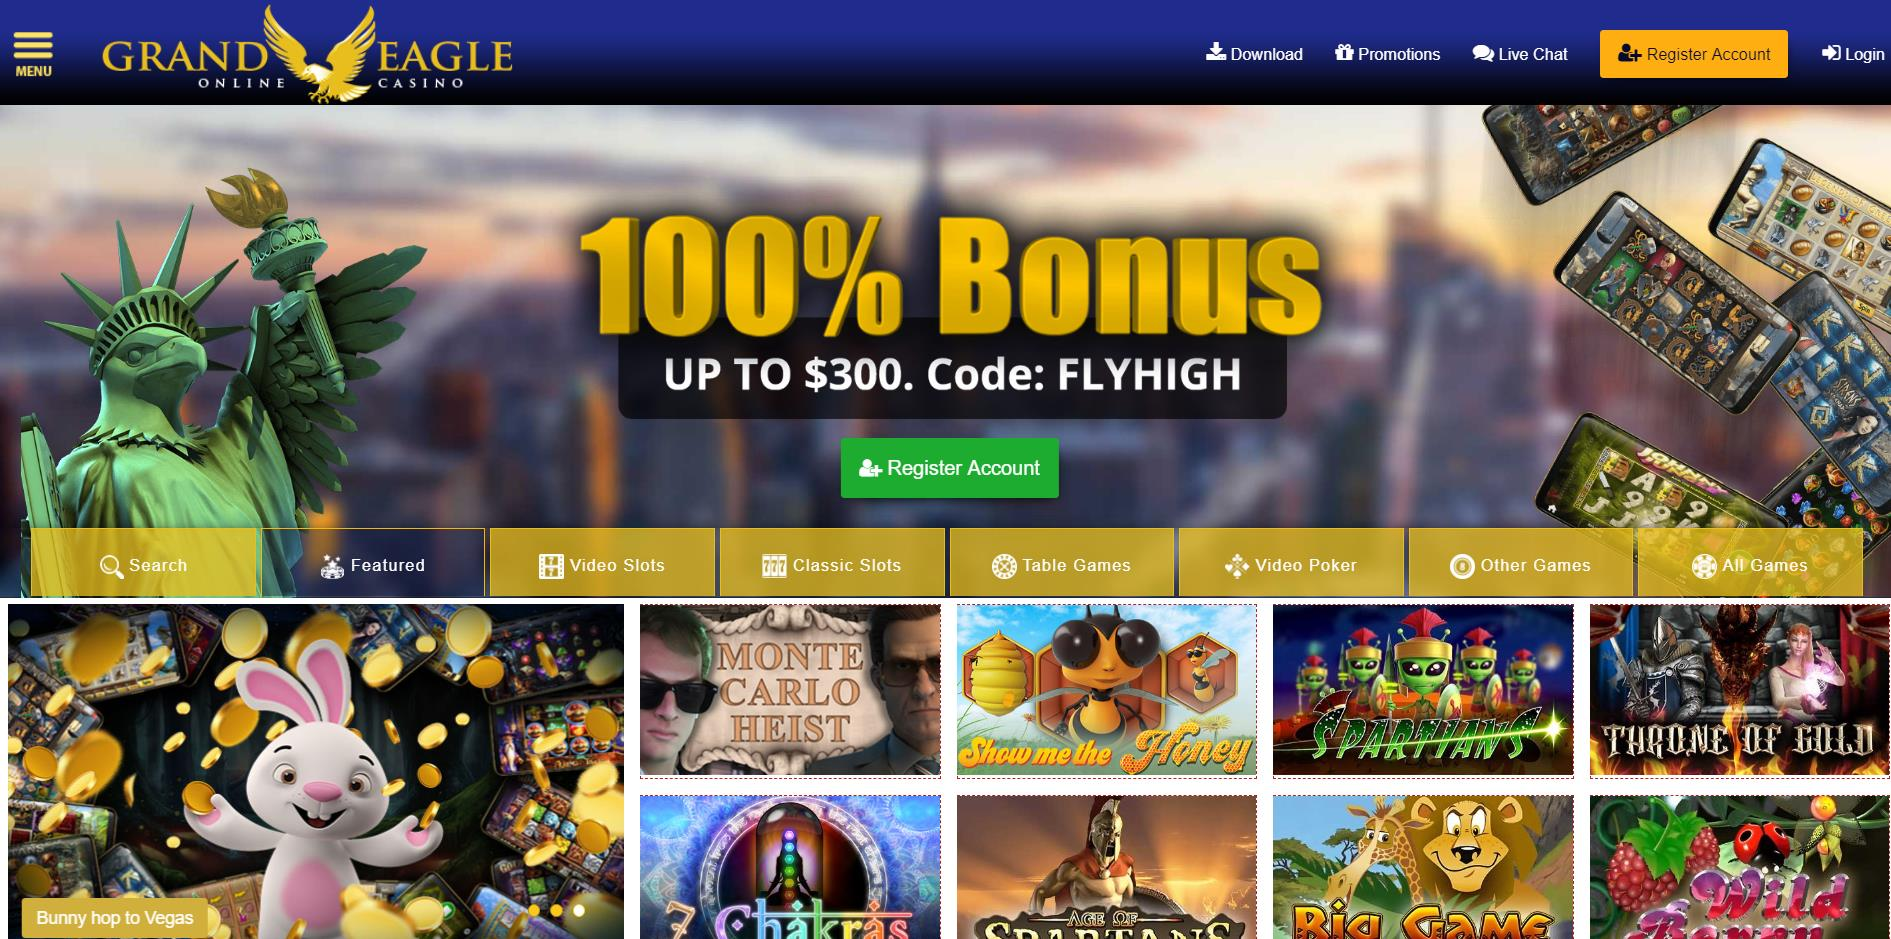 Grand Eagle Casino Canada Grand Eagle Online Casino 2020